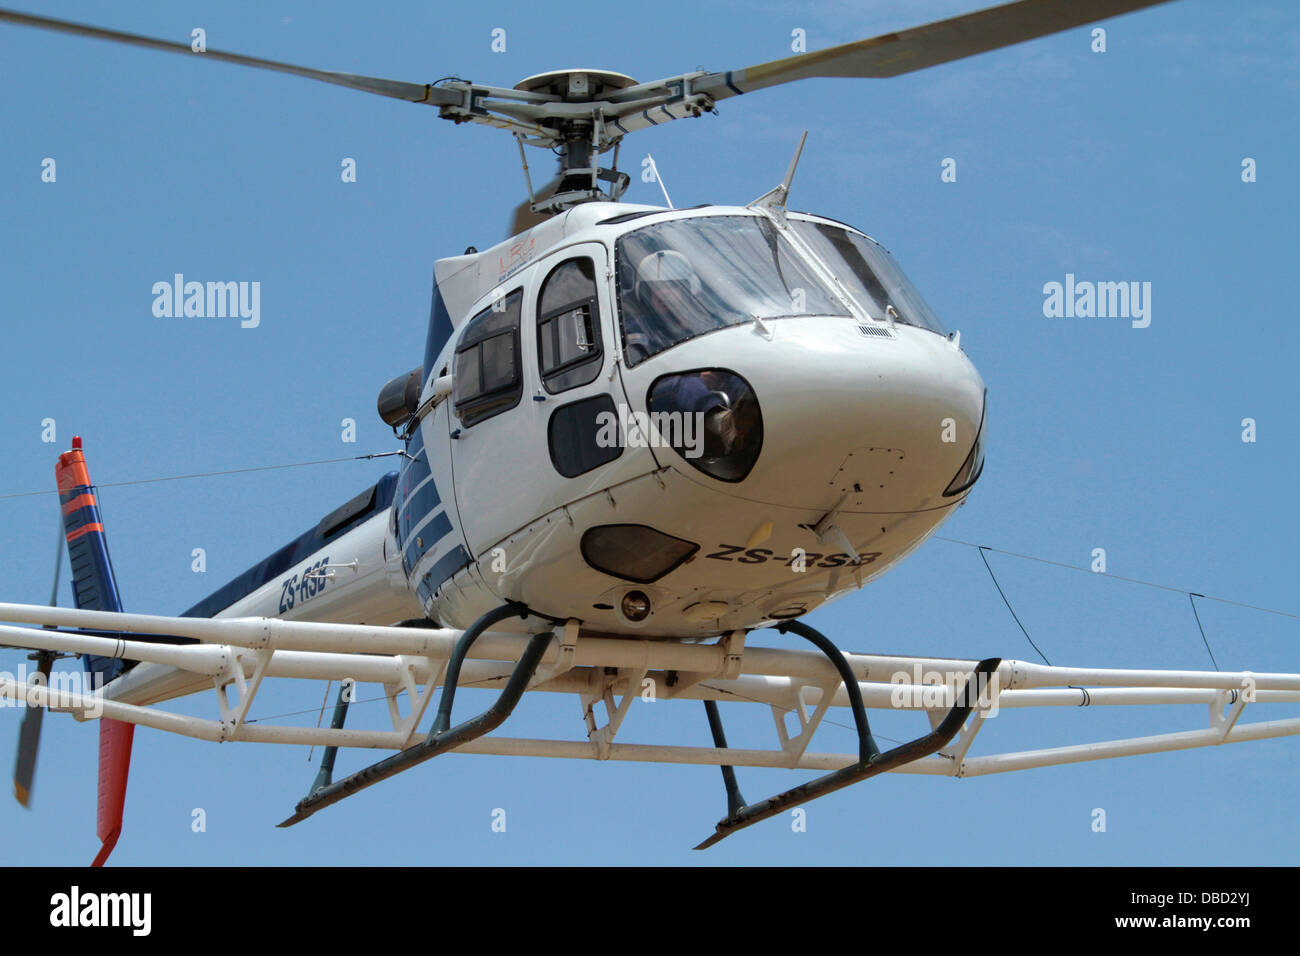 A Squirrel jet engined helicopter on a Geophys Survey for Minerals - Stock Image